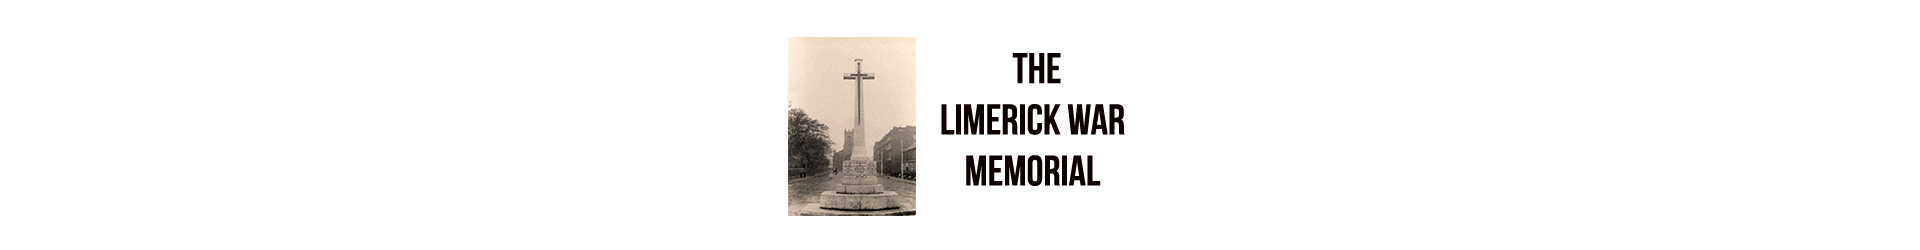 The Limerick War Memorial